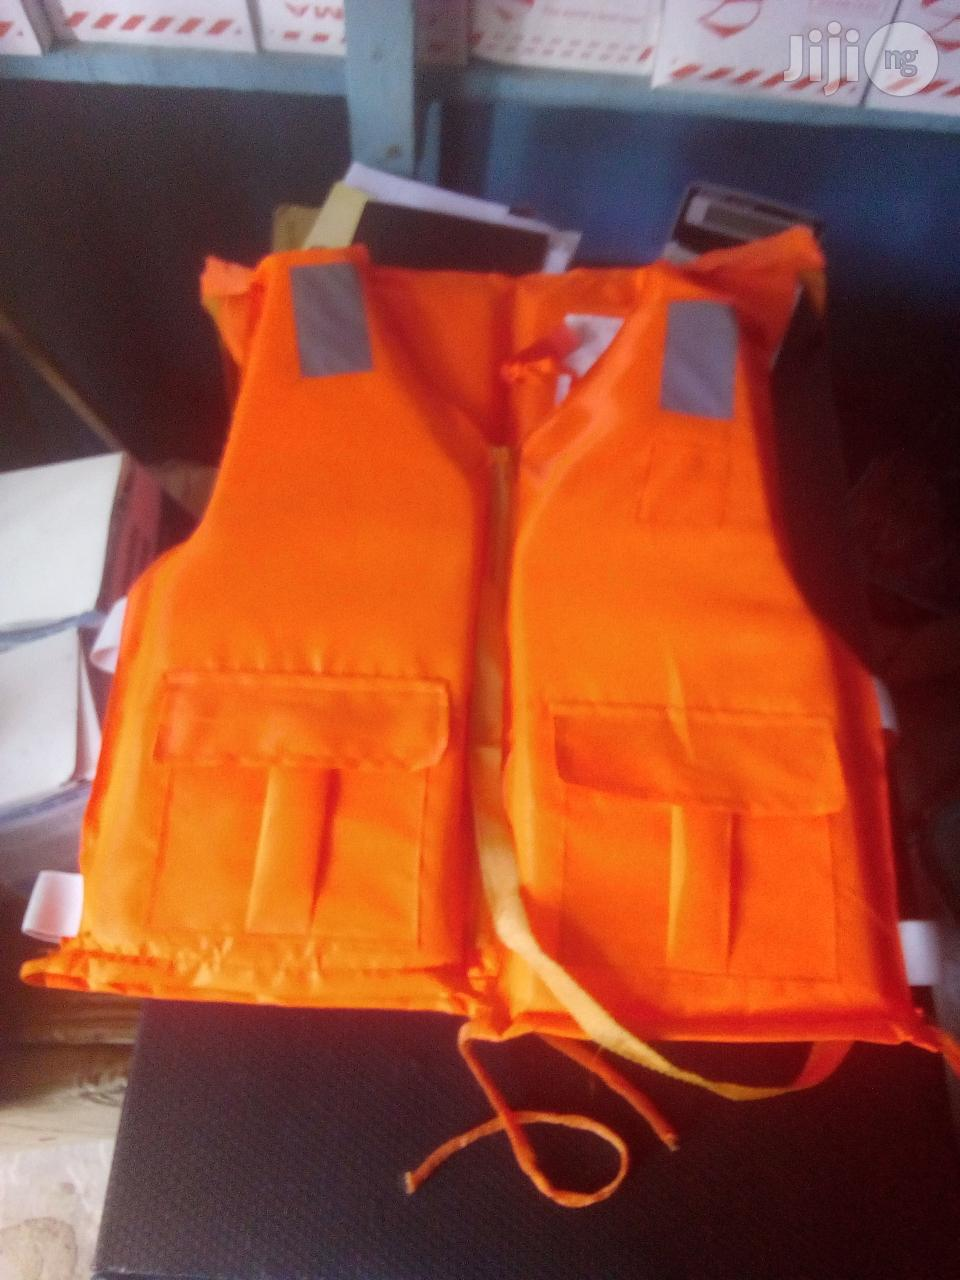 Safety Quality Work Vest | Safetywear & Equipment for sale in Egbe Idimu, Lagos State, Nigeria